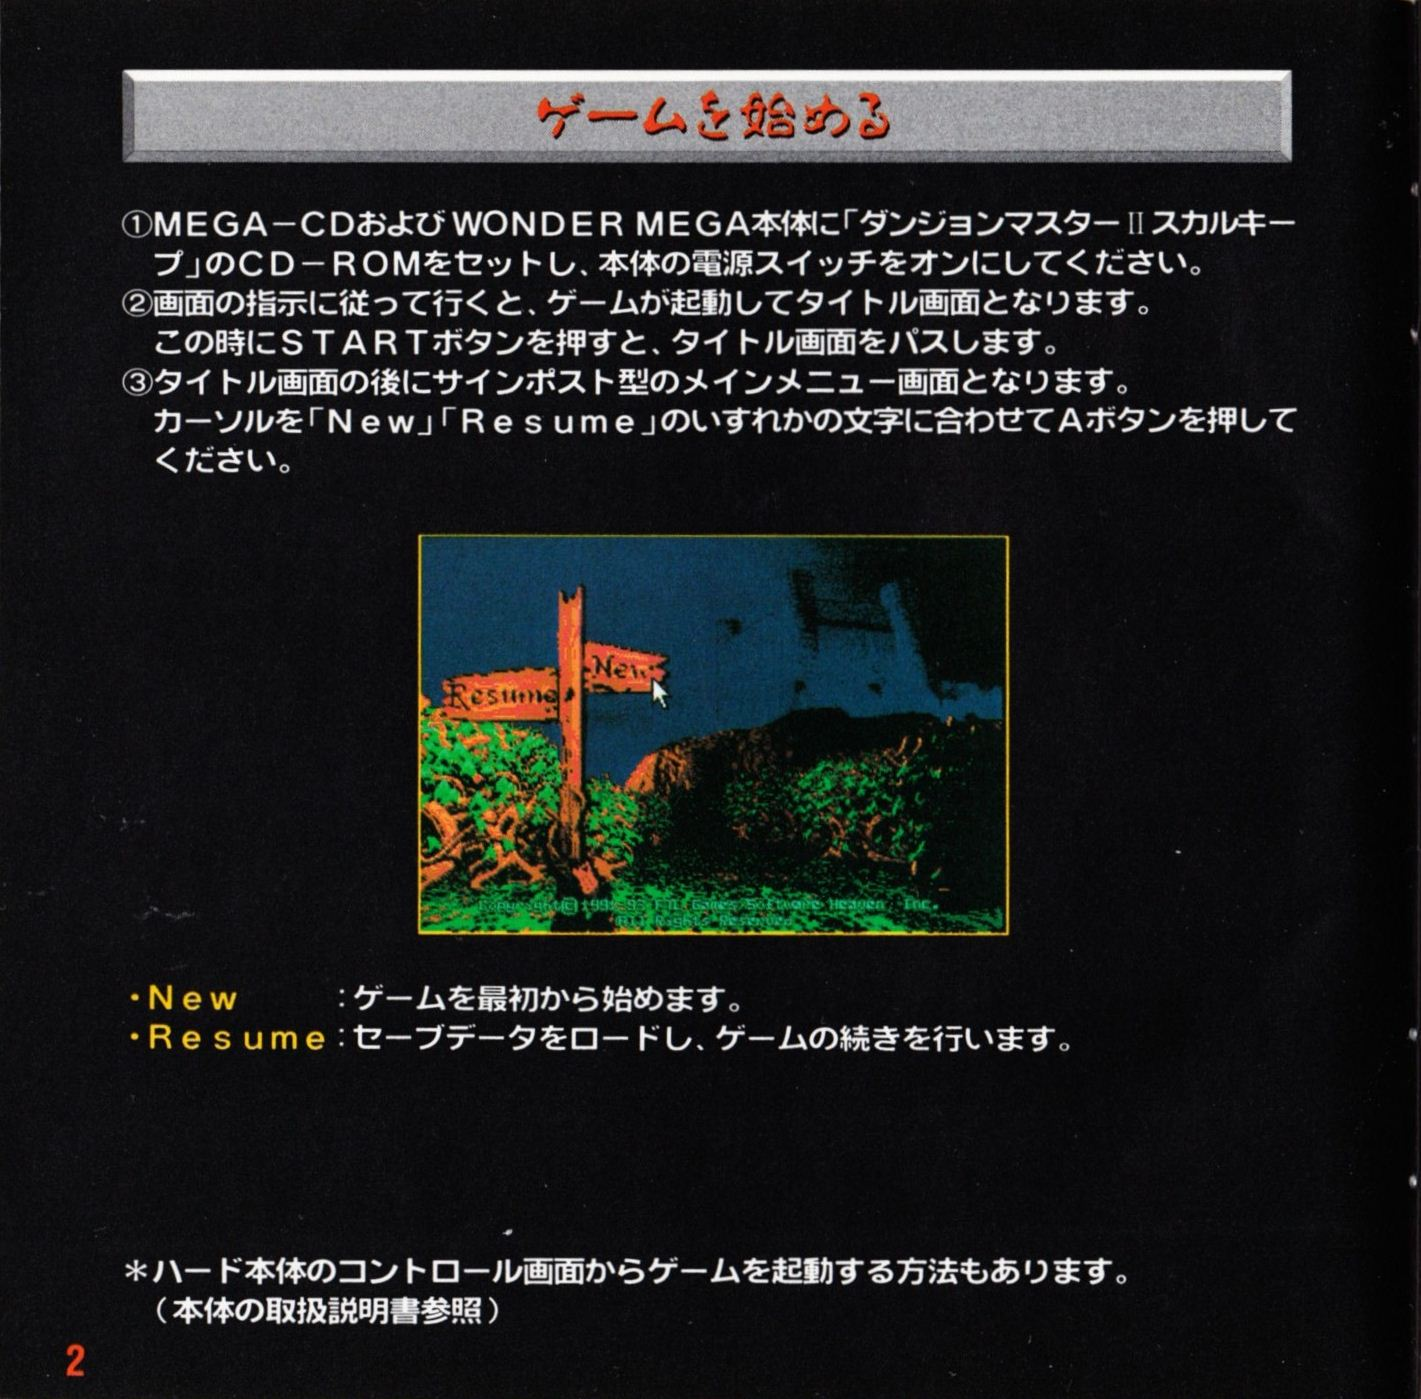 Game - Dungeon Master II - JP - Mega CD - Booklet - Page 004 - Scan